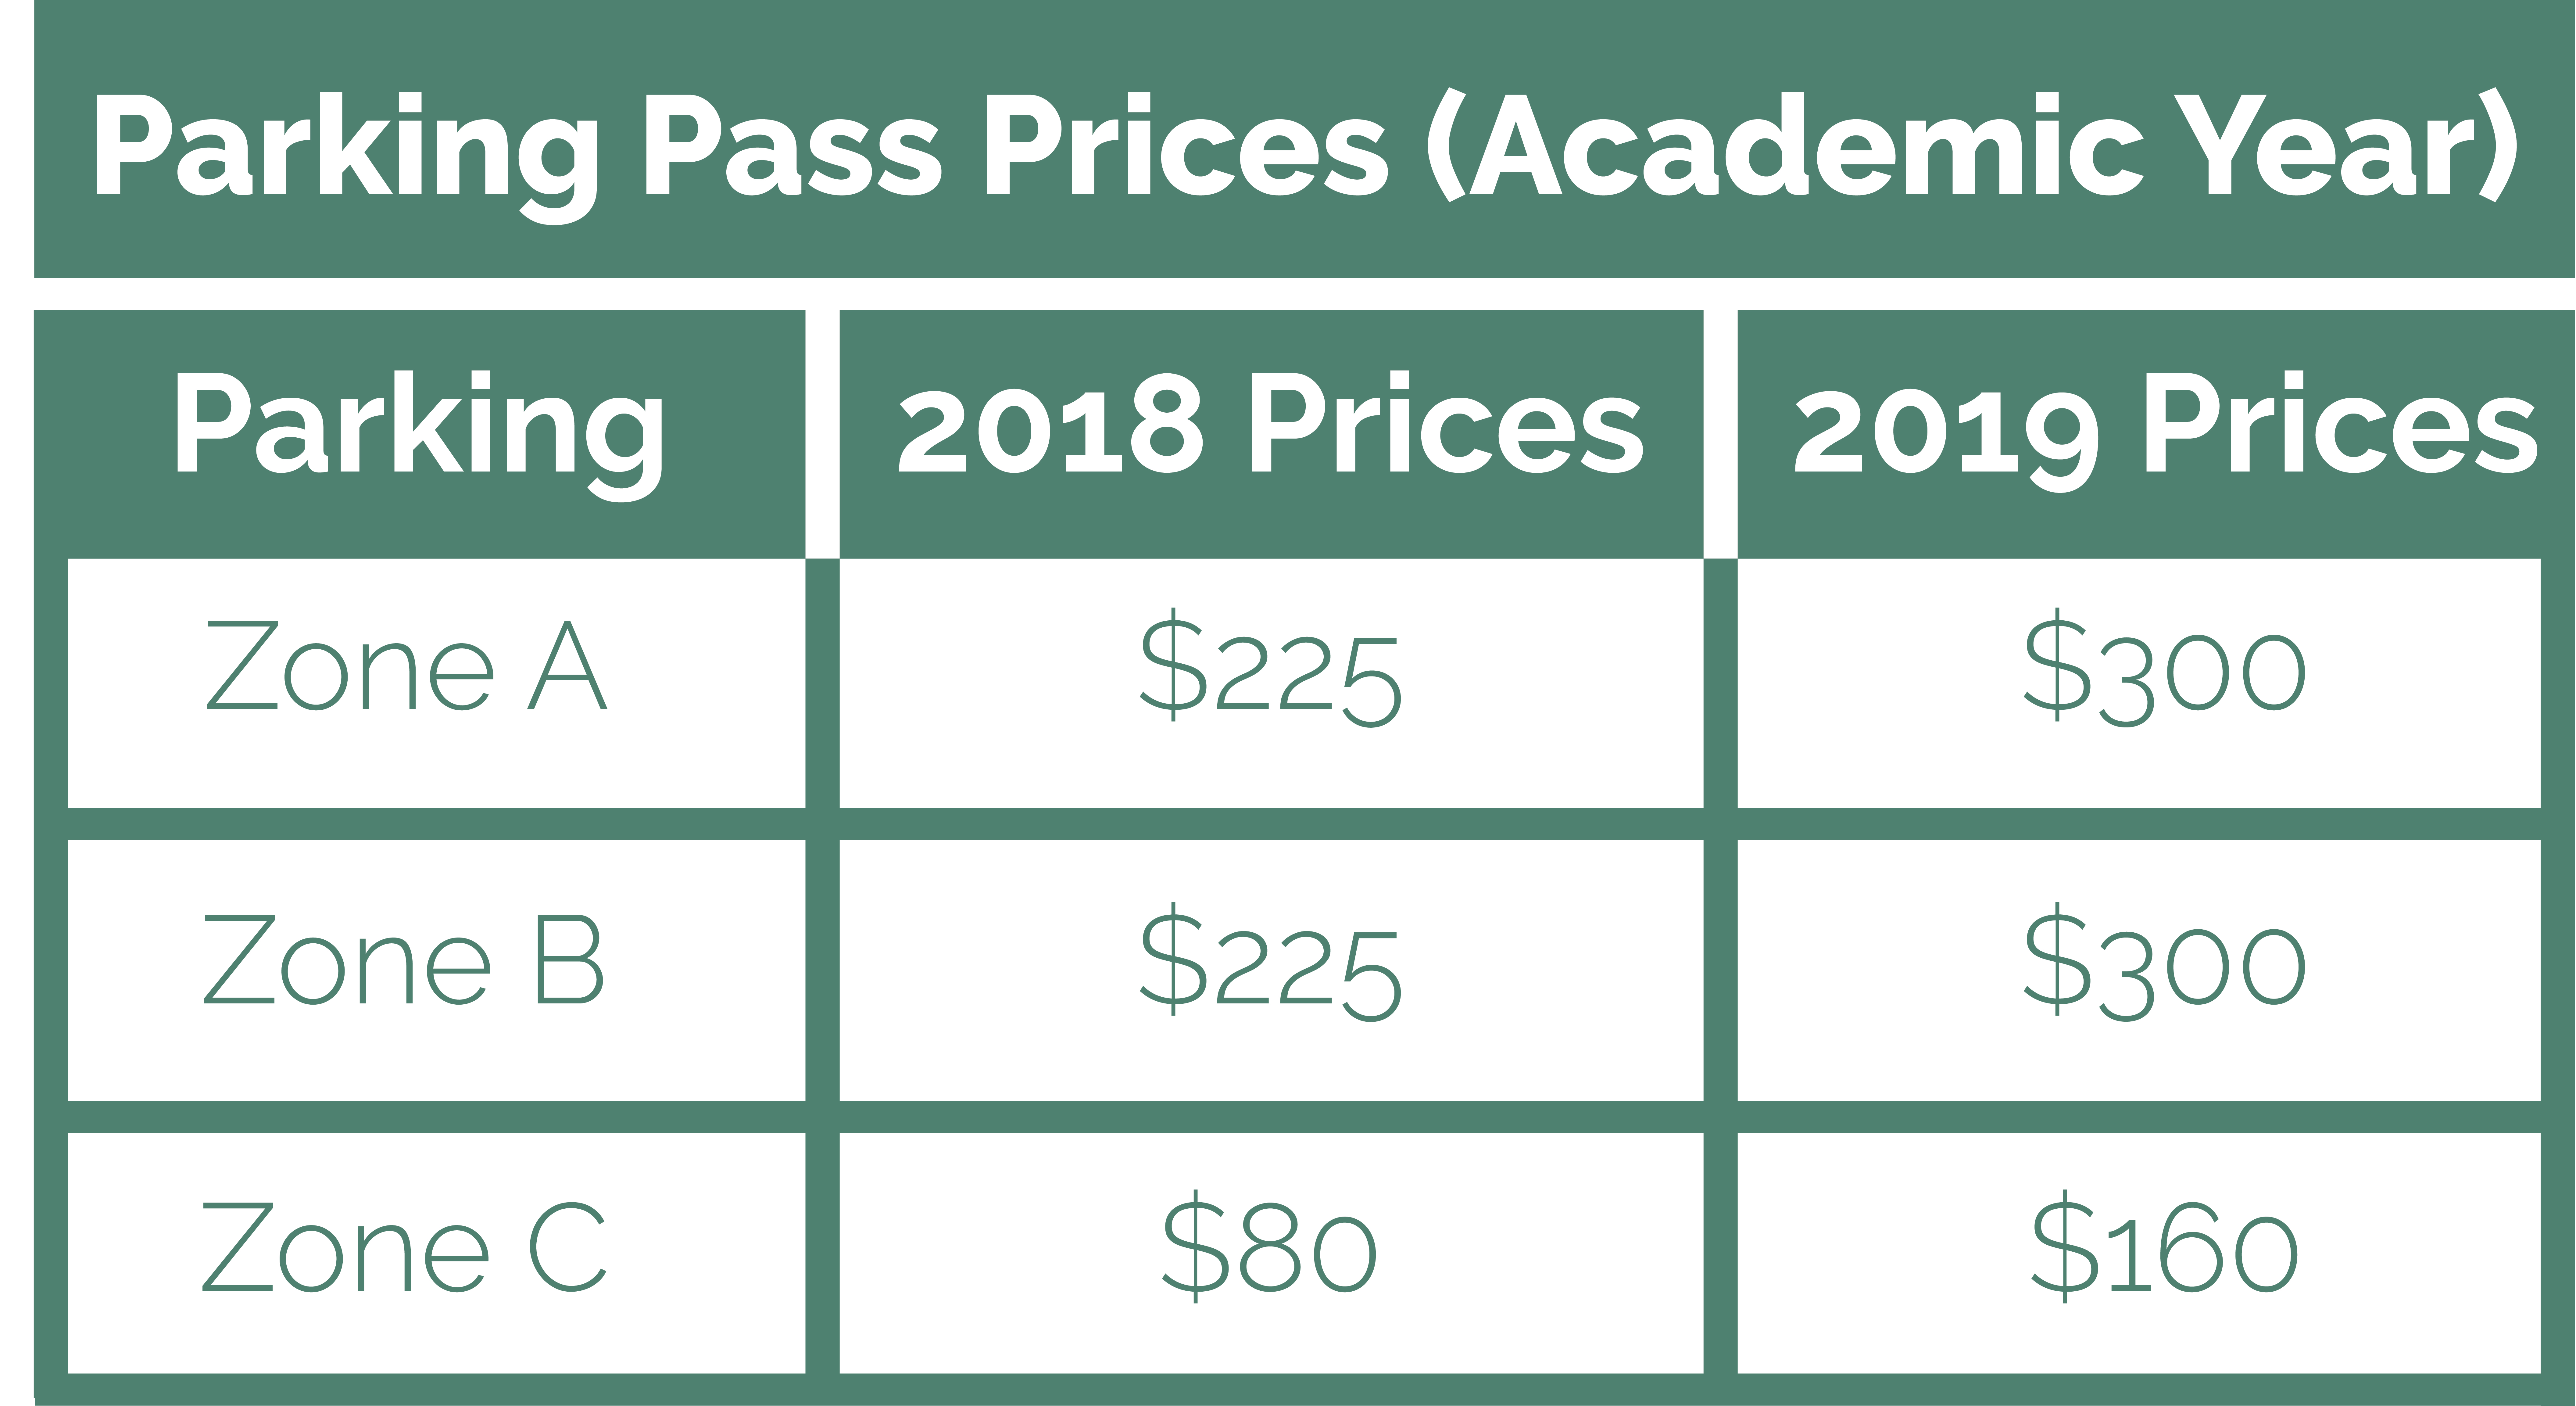 PARKING PASS PRICES